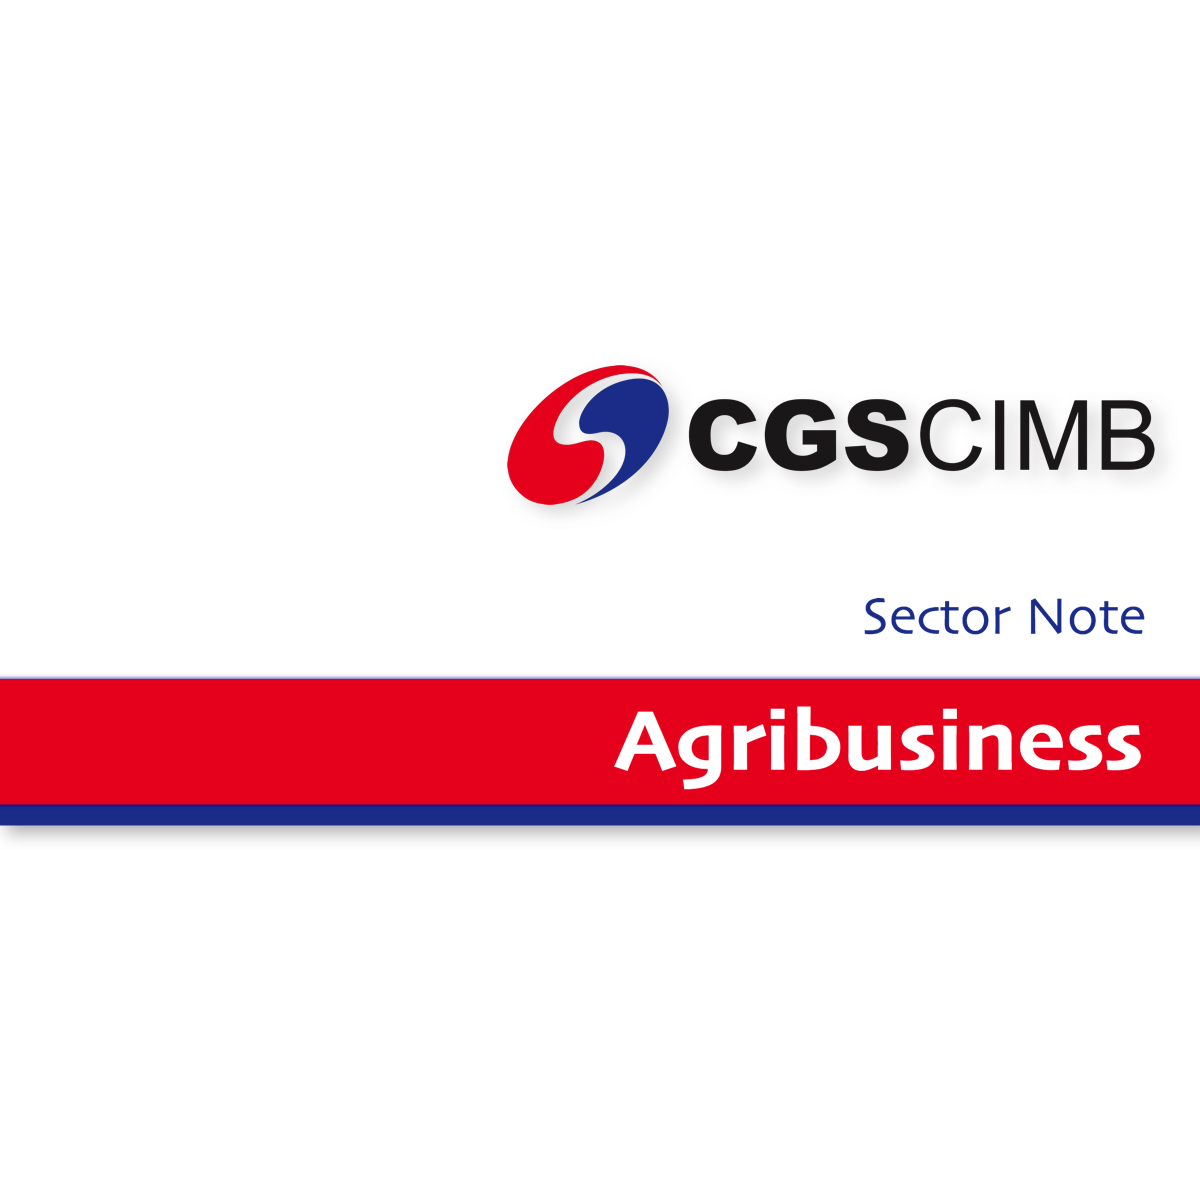 Agribusiness - CGS-CIMB Research | SGinvestors.io